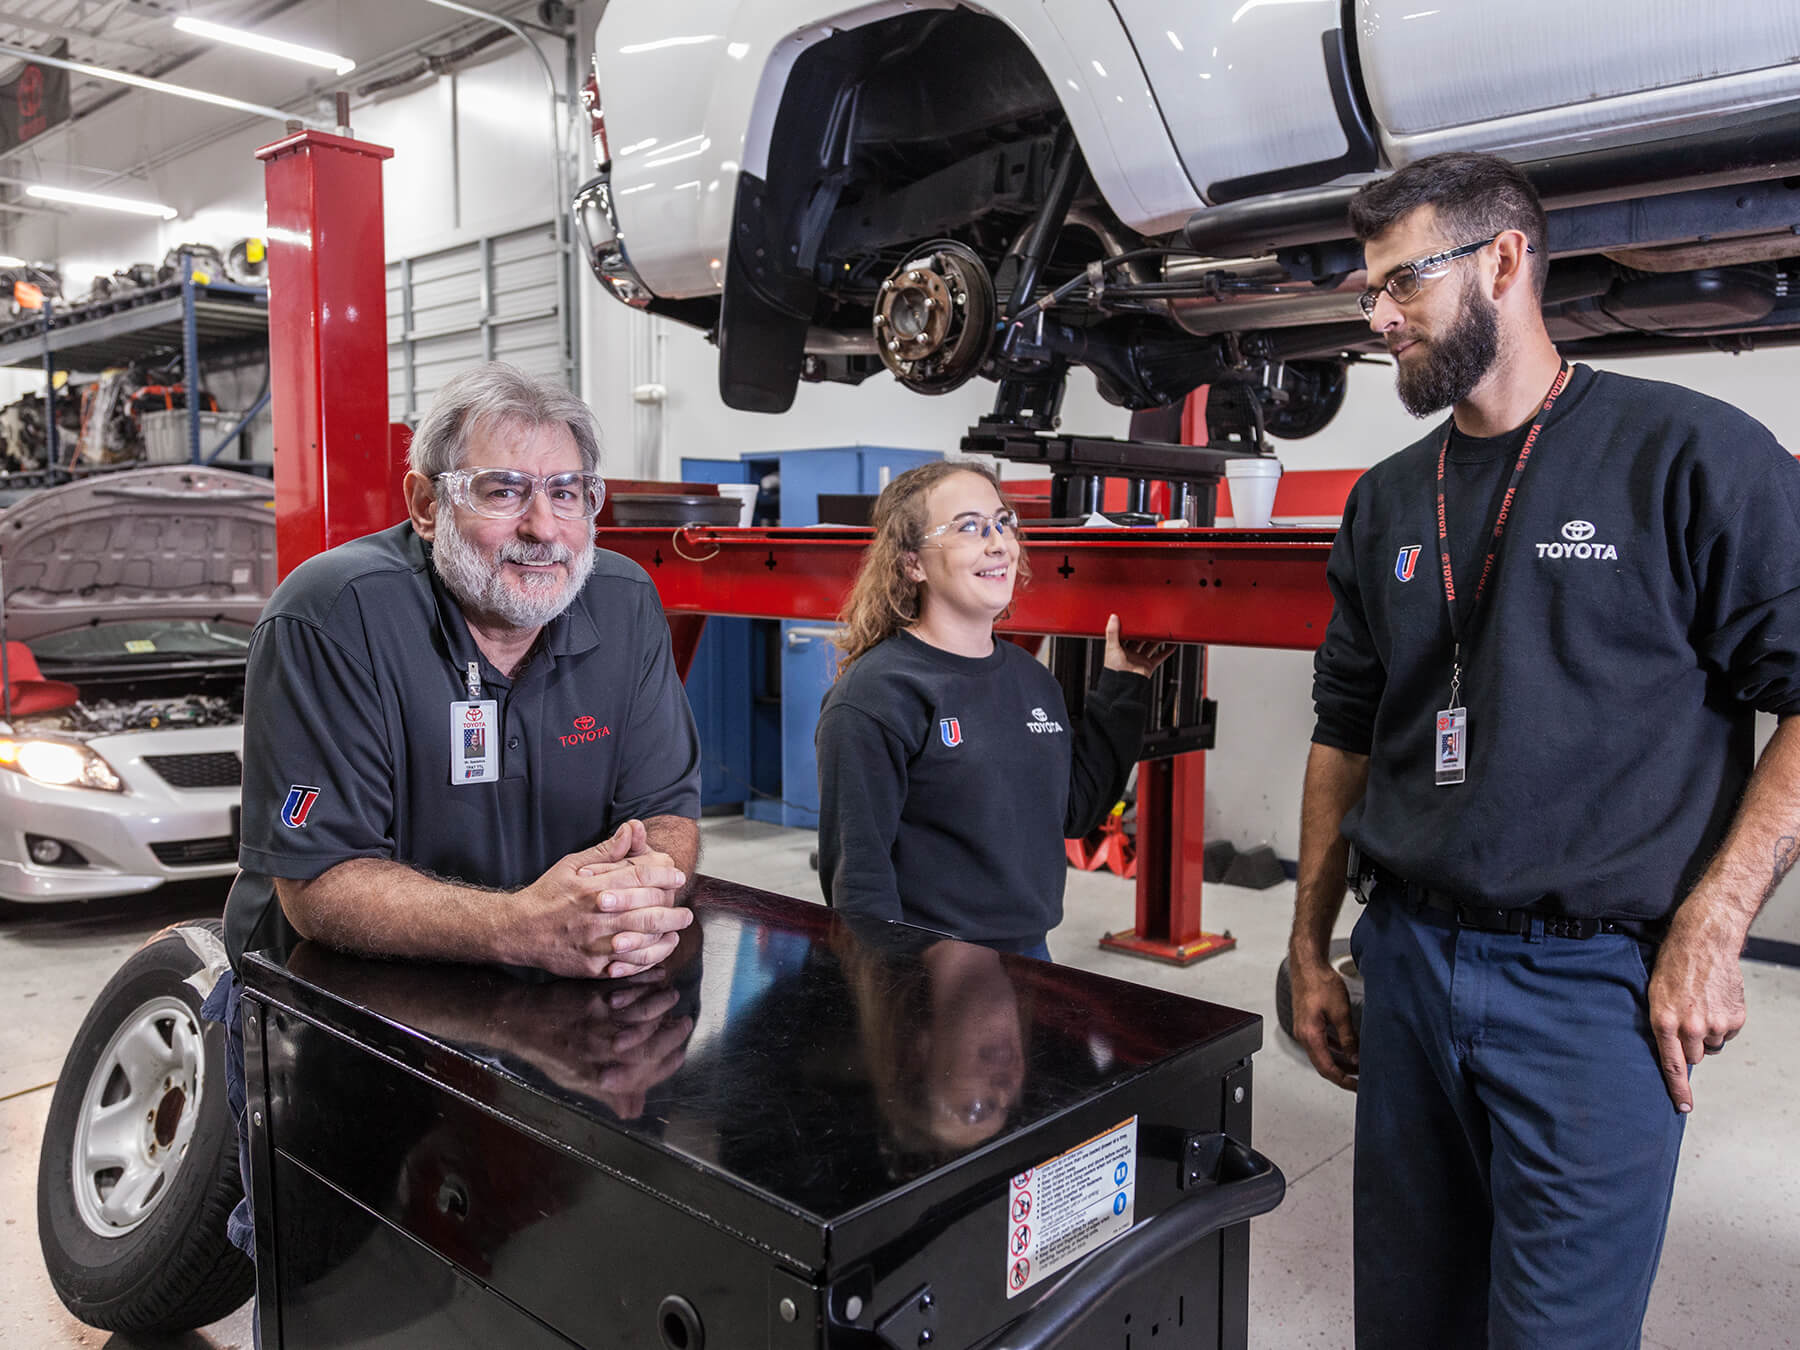 Students and Instructor smiling near a car on a lift  in the Toyota lab at the Exton campus